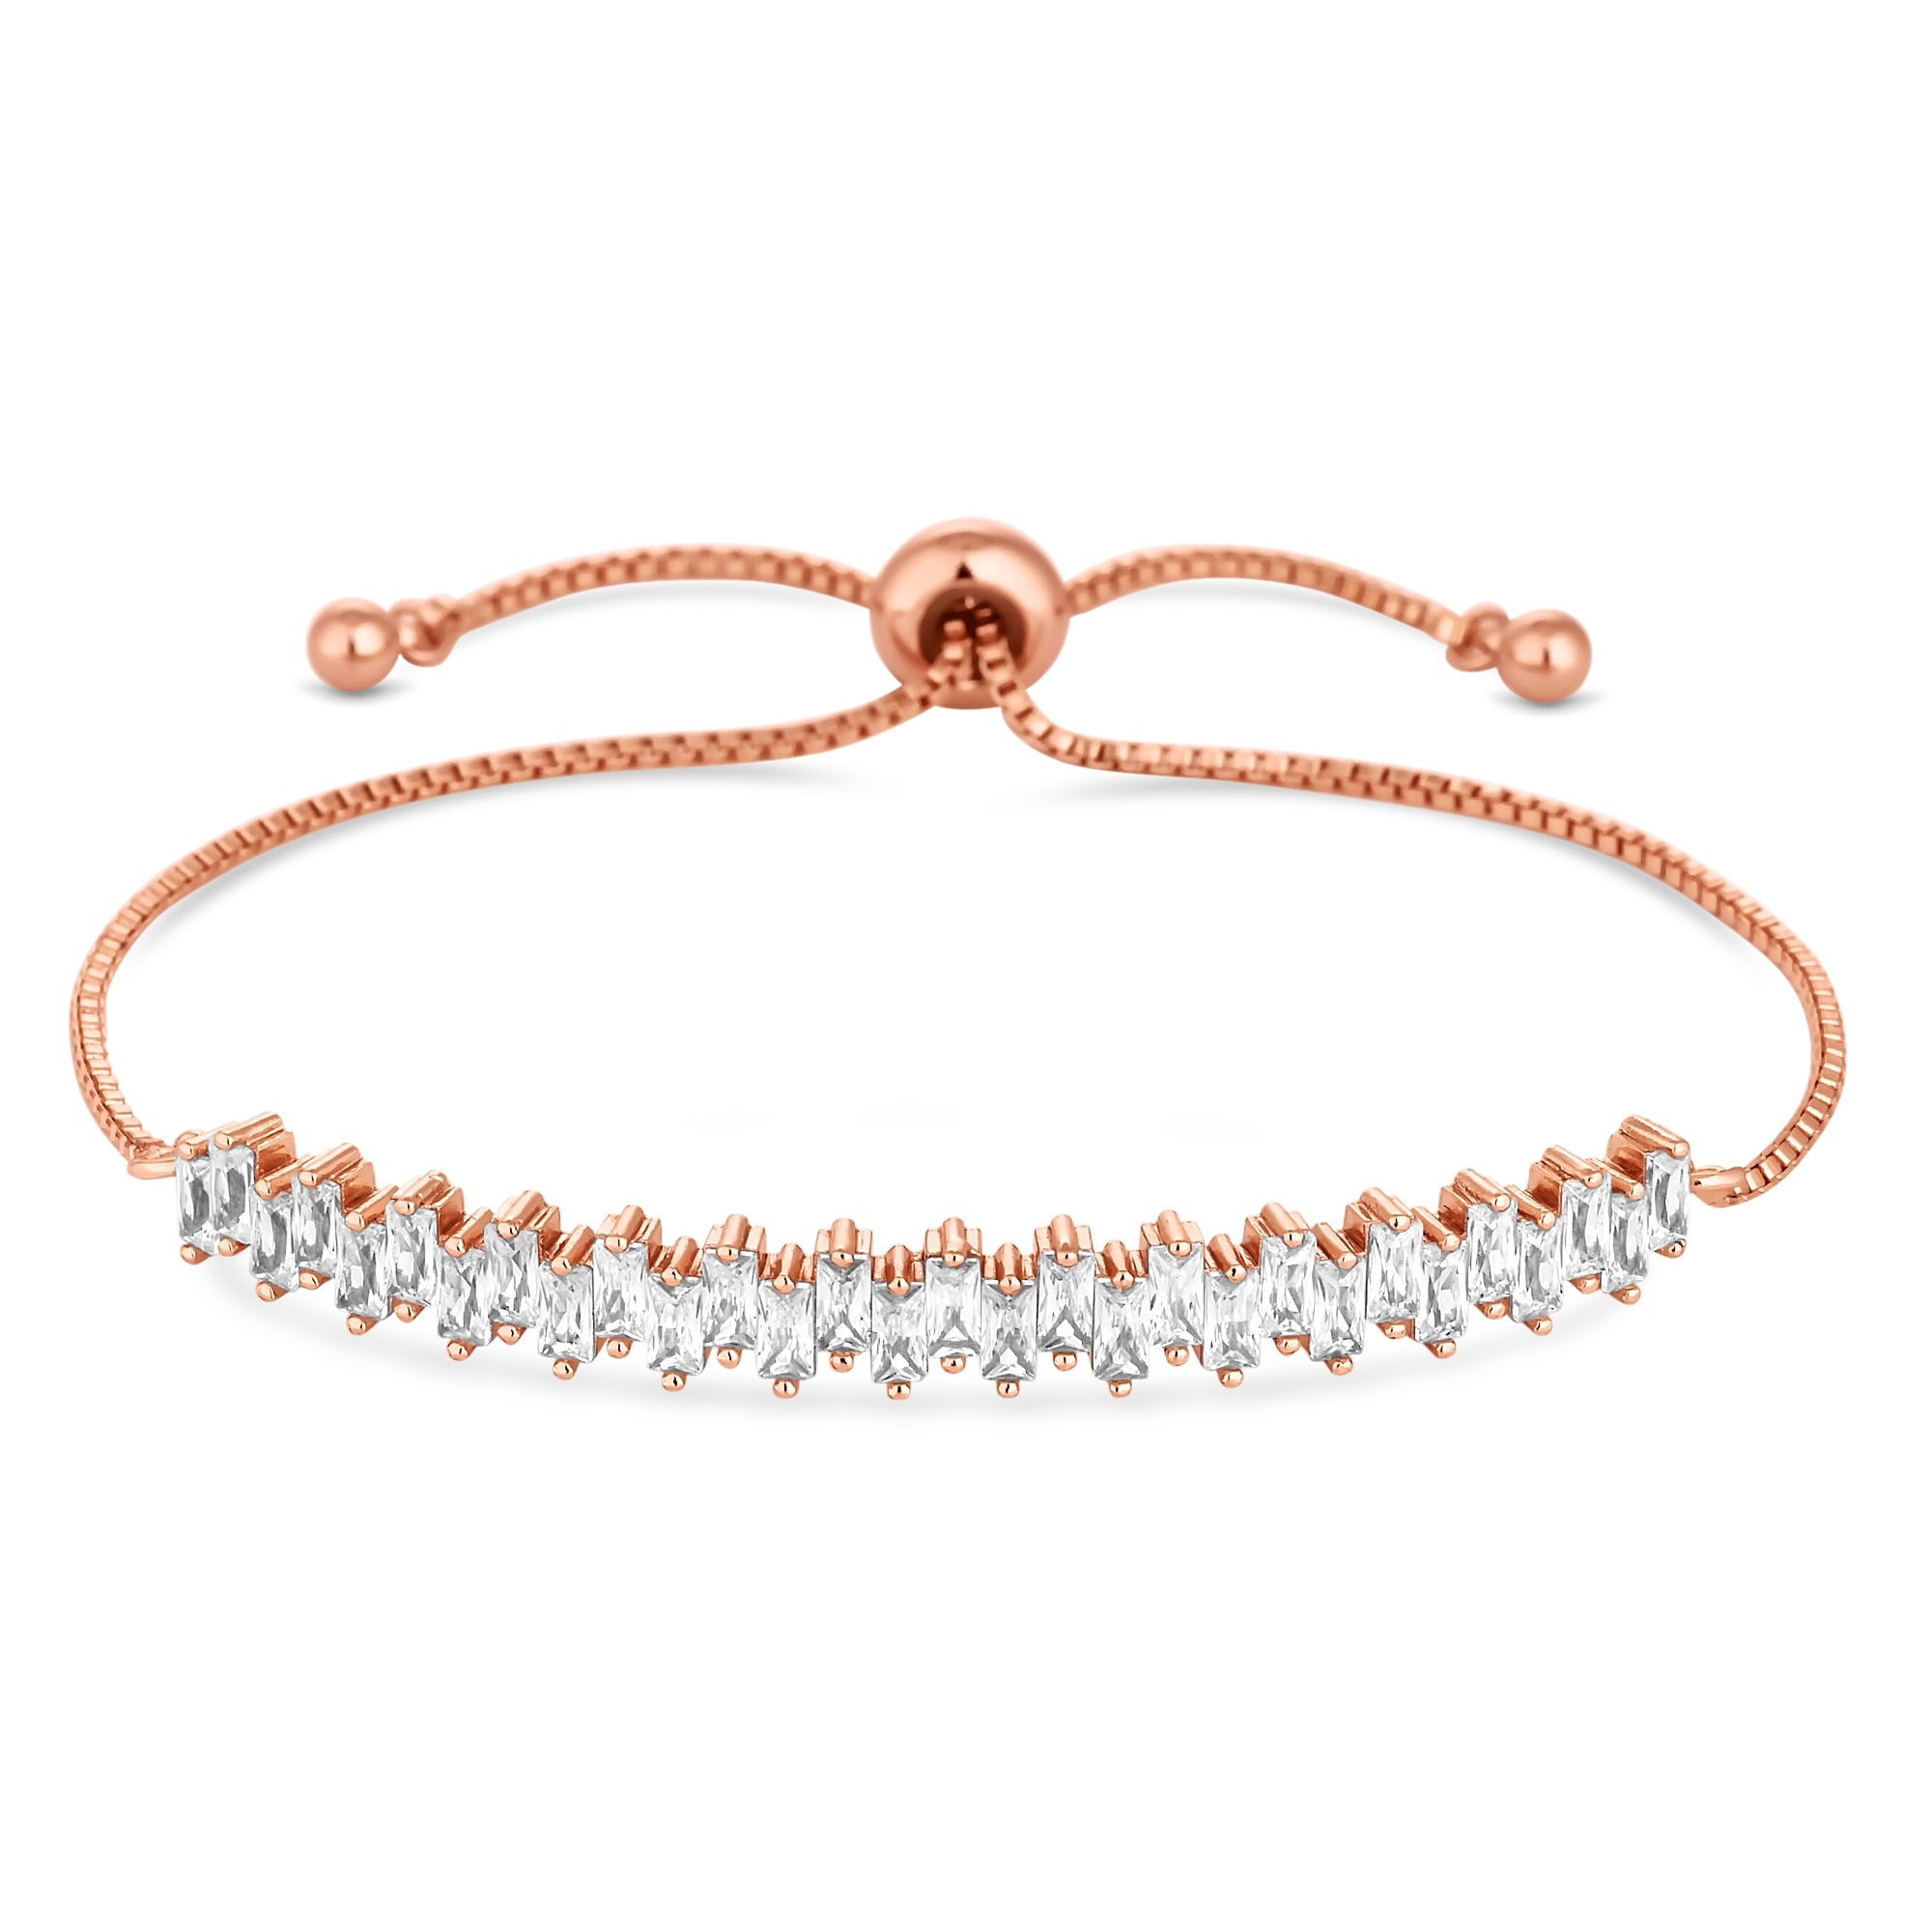 bracelet china anklet steel zirconia com cubic plated sporty aaa jewelry discount anklets dhgate casual gold stainless woman rose ankle women from fashion product